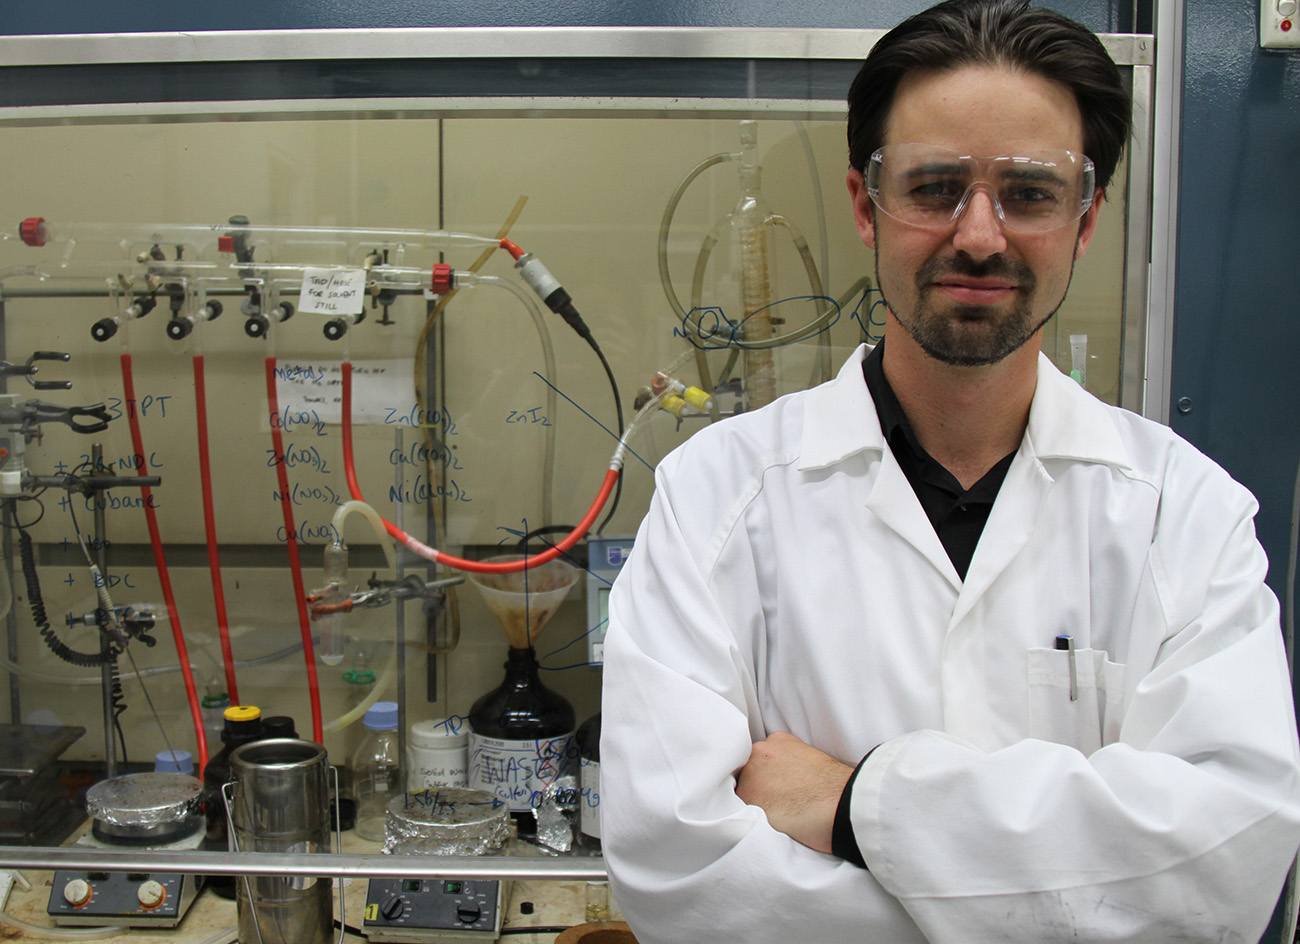 Scientist standing infront of equipment.